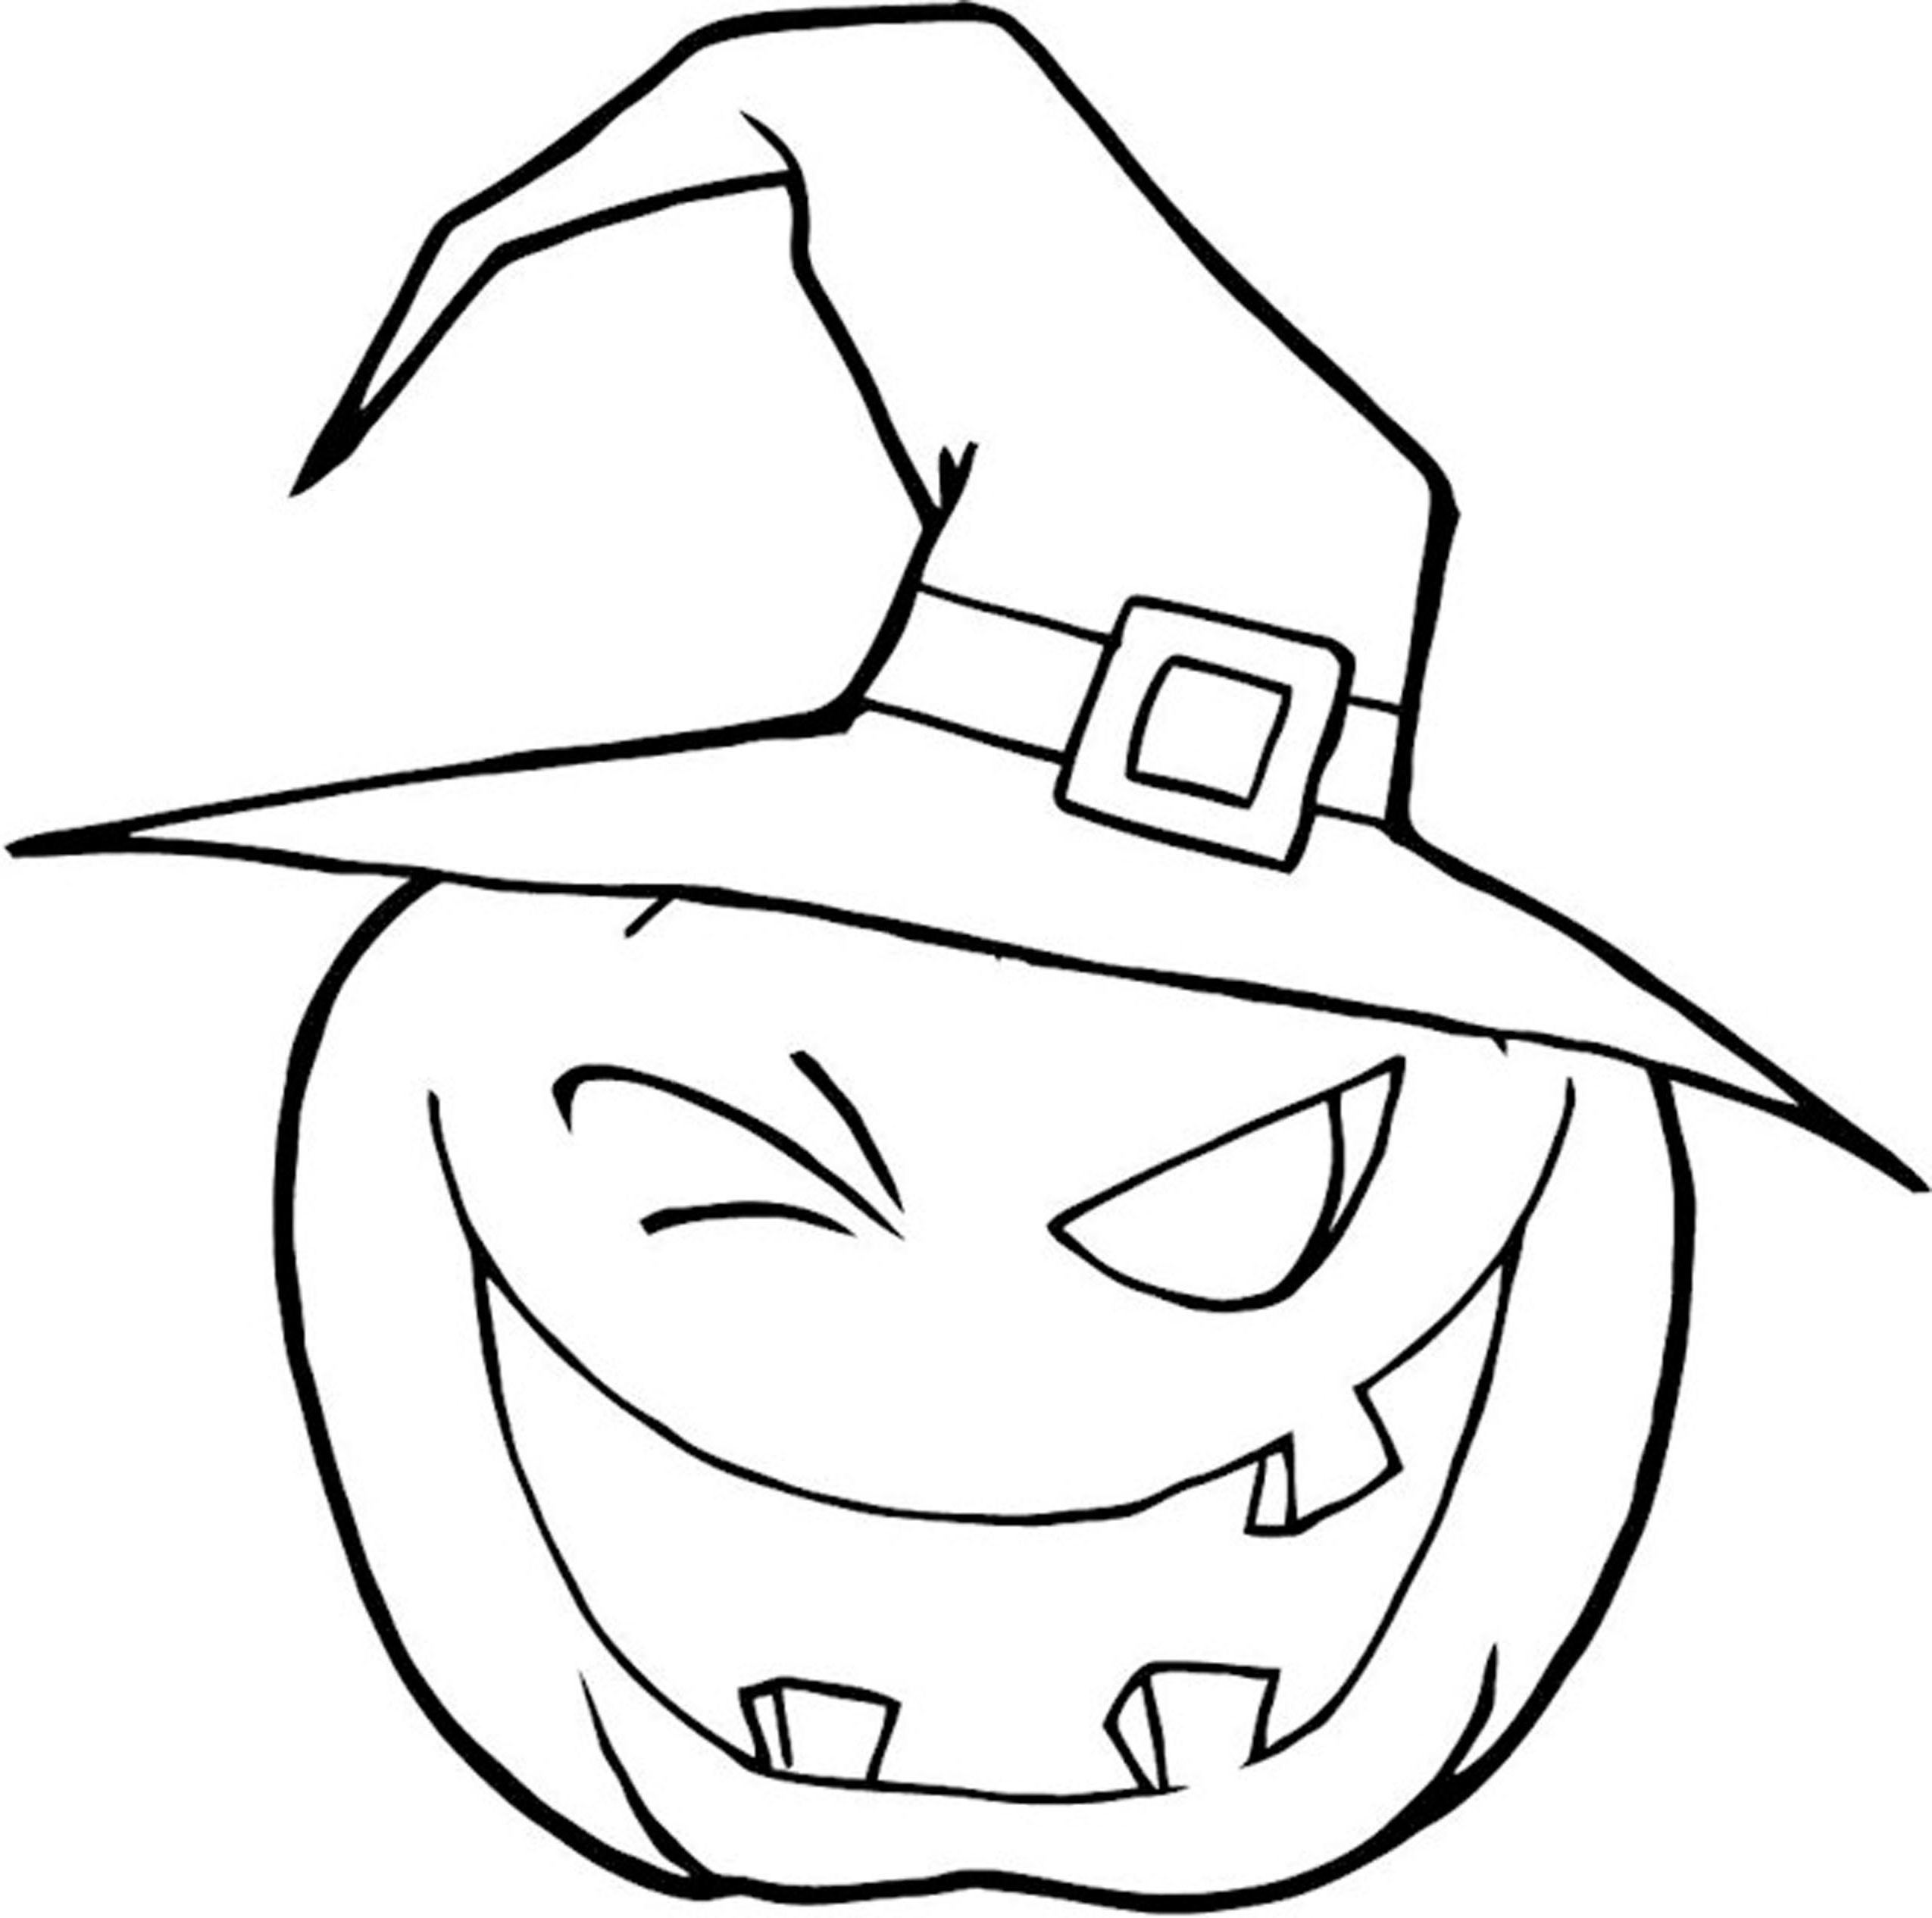 Halloween Pumpkin Coloring Pages Freeprintablecoloringpages 2550×2531  Pumpkin And